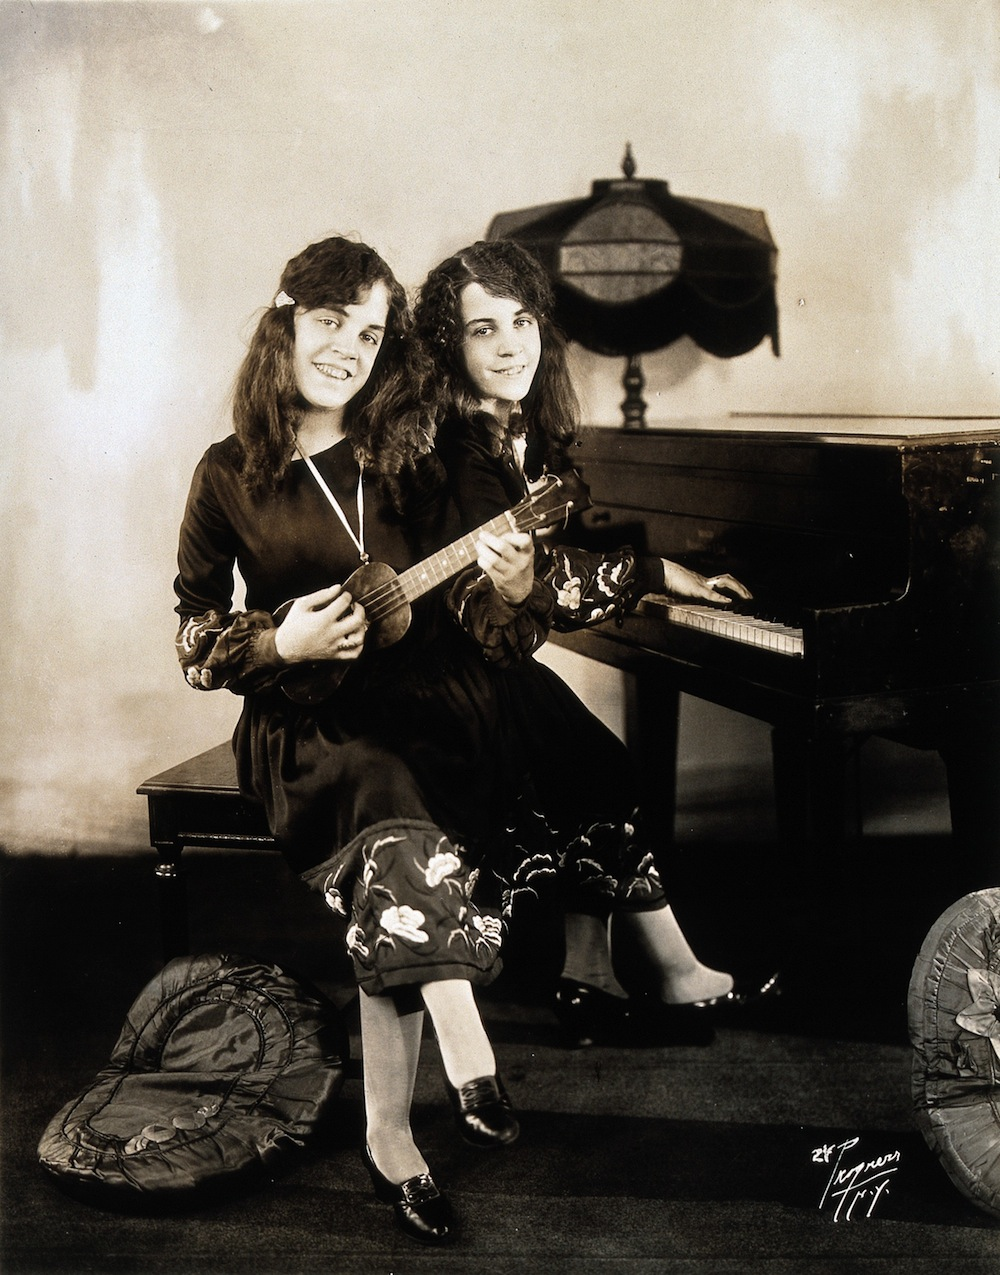 V0029601 Daisy and Violet Hilton, conjoined twins, playing piano and Credit: Wellcome Library, London. Wellcome Images images@wellcome.ac.uk http://wellcomeimages.org Daisy and Violet Hilton, conjoined twins, playing piano and ukelele. Photograph, c. 1927. 1930 Published:  -  Copyrighted work available under Creative Commons Attribution only licence CC BY 4.0 http://creativecommons.org/licenses/by/4.0/